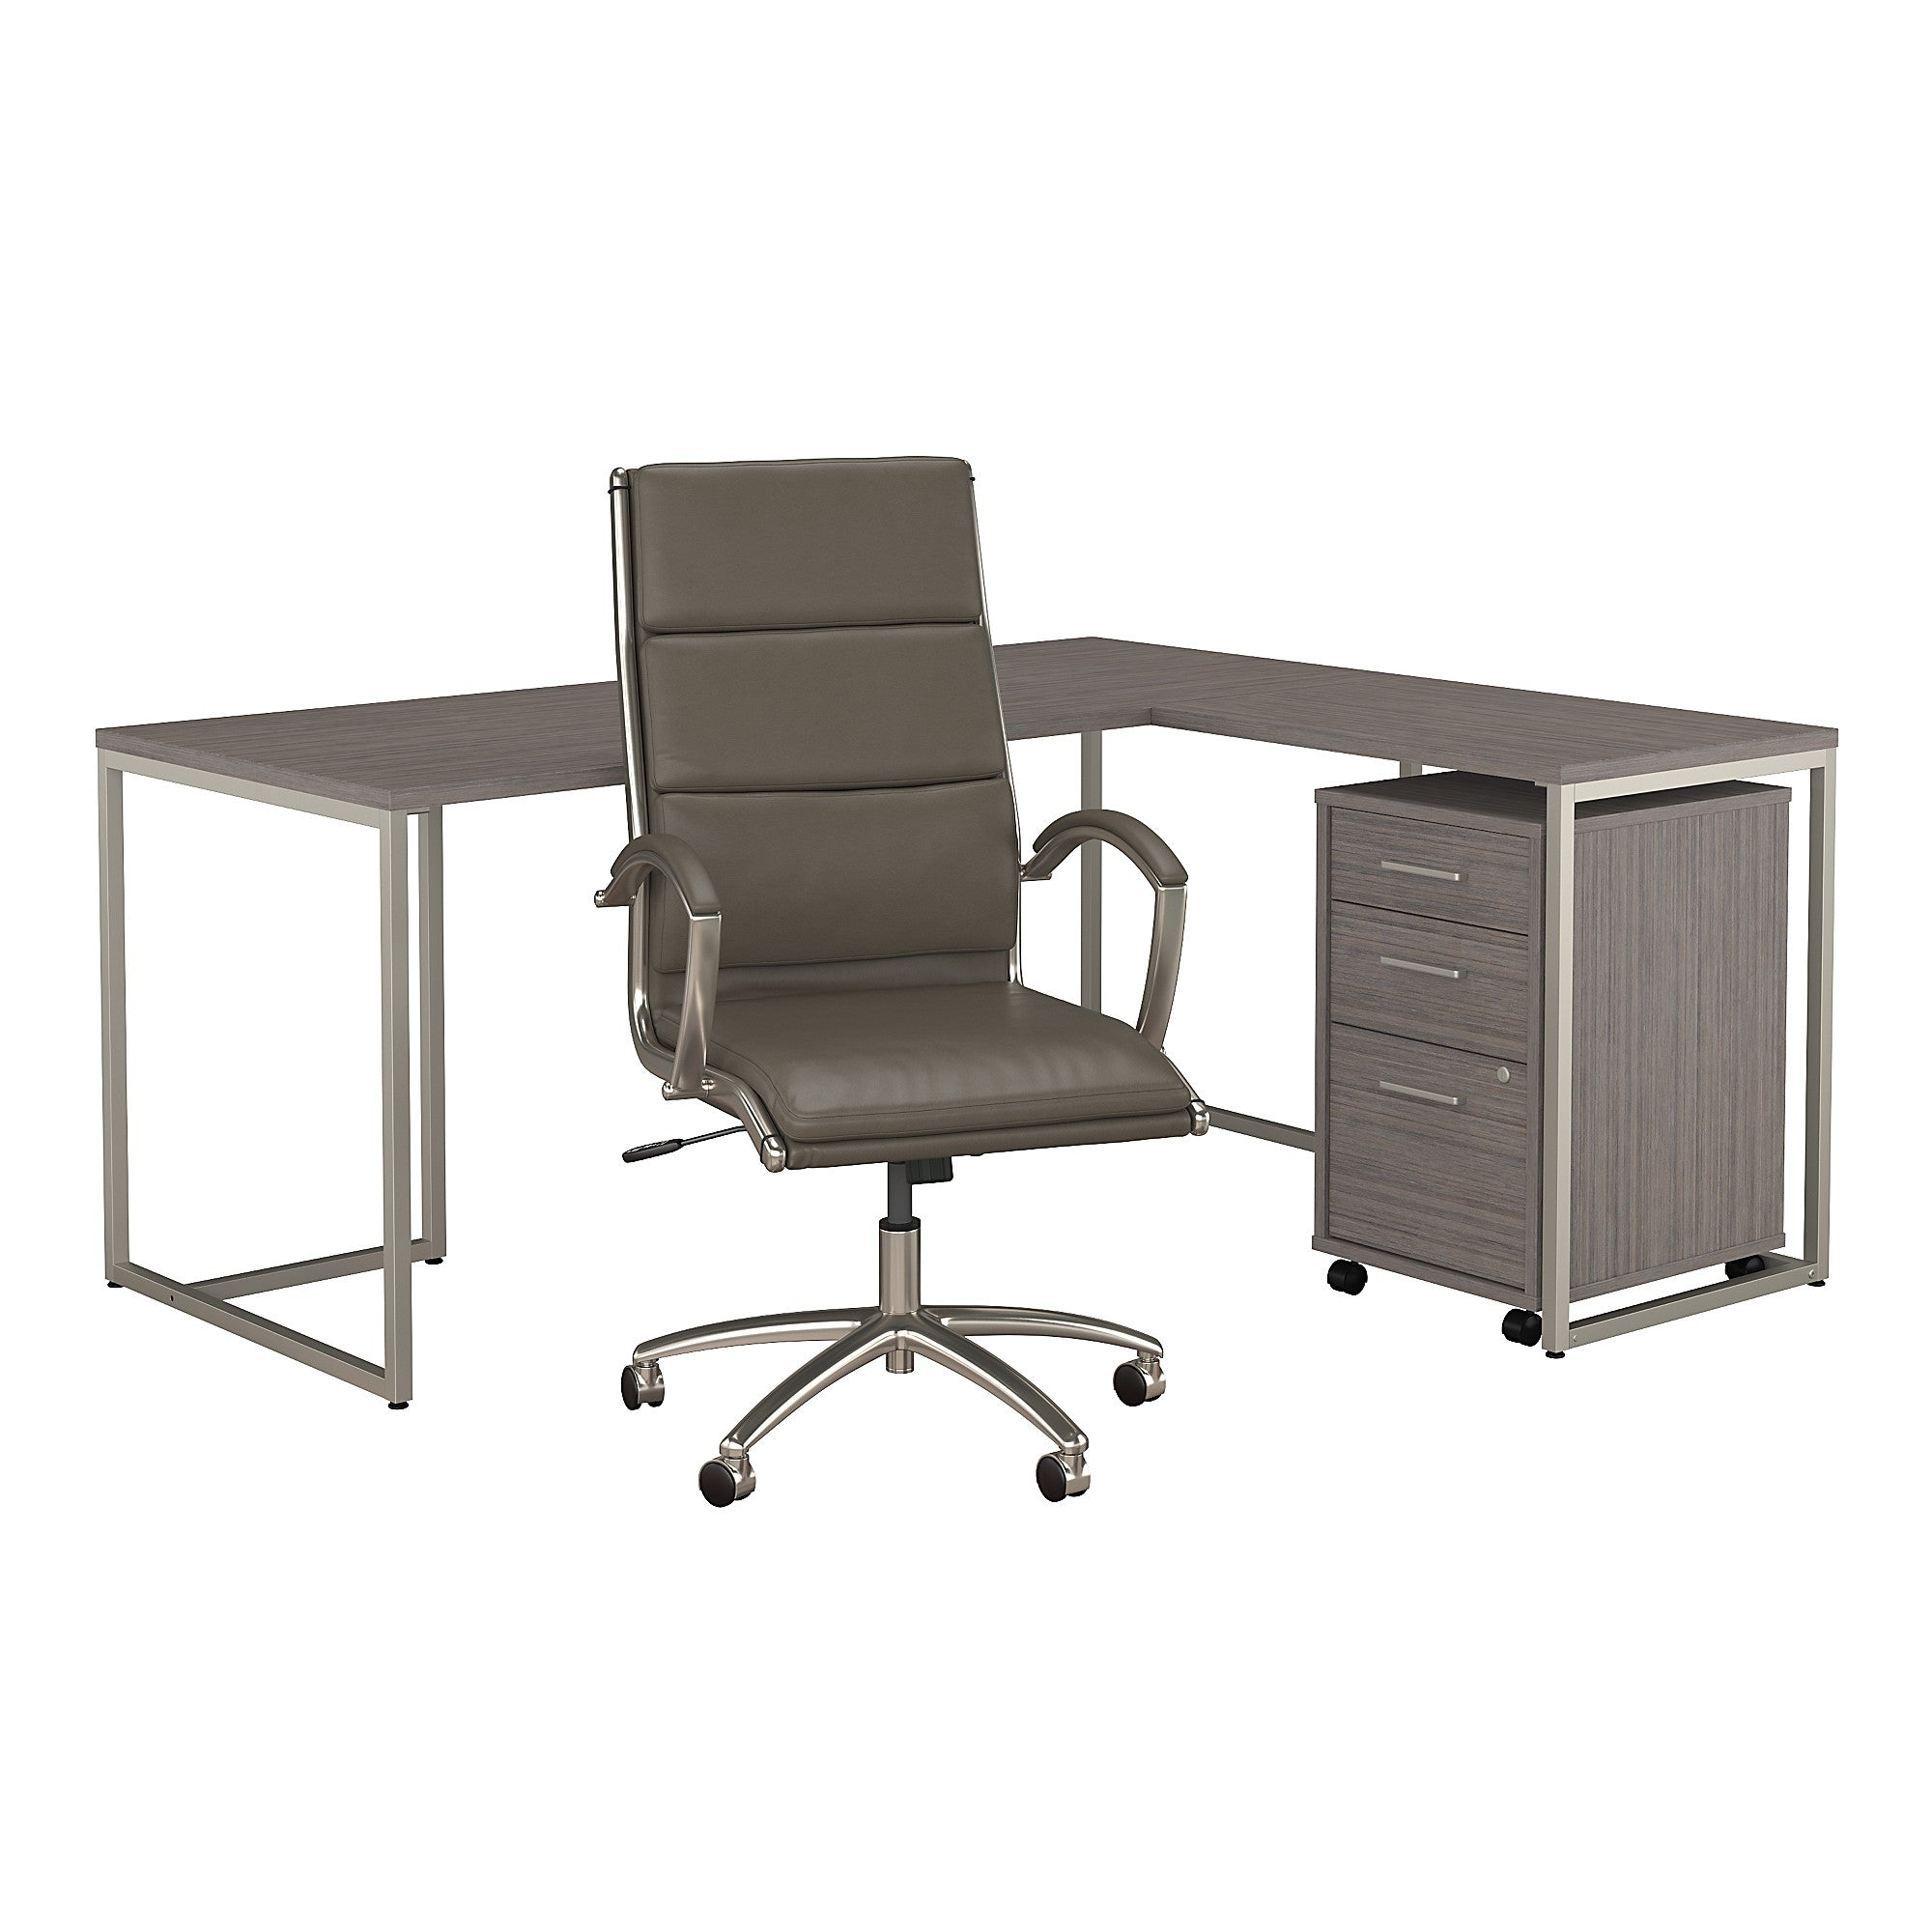 Method 72W L Shaped Desk with Mobile File Cabinet & High Back Chair